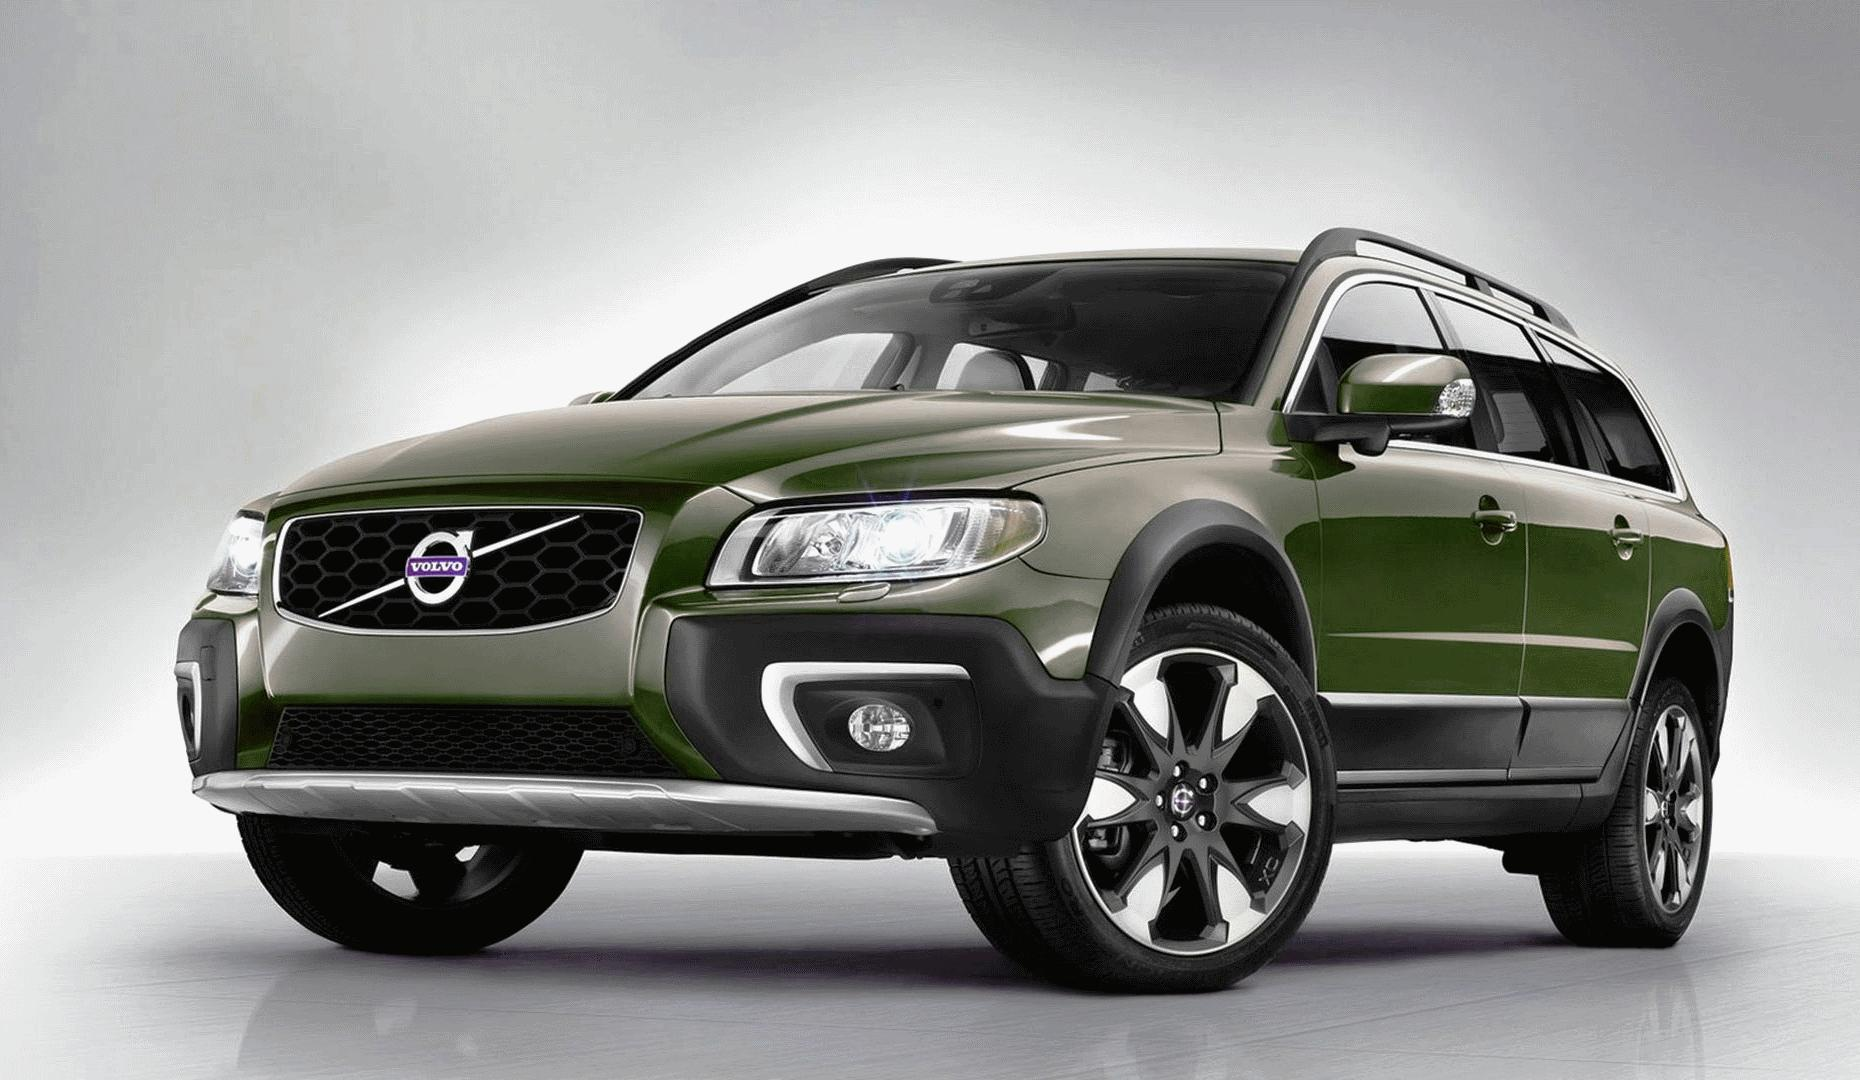 volvo xc60 2015 vs volvo xc70 2015 por wnanie suv y. Black Bedroom Furniture Sets. Home Design Ideas